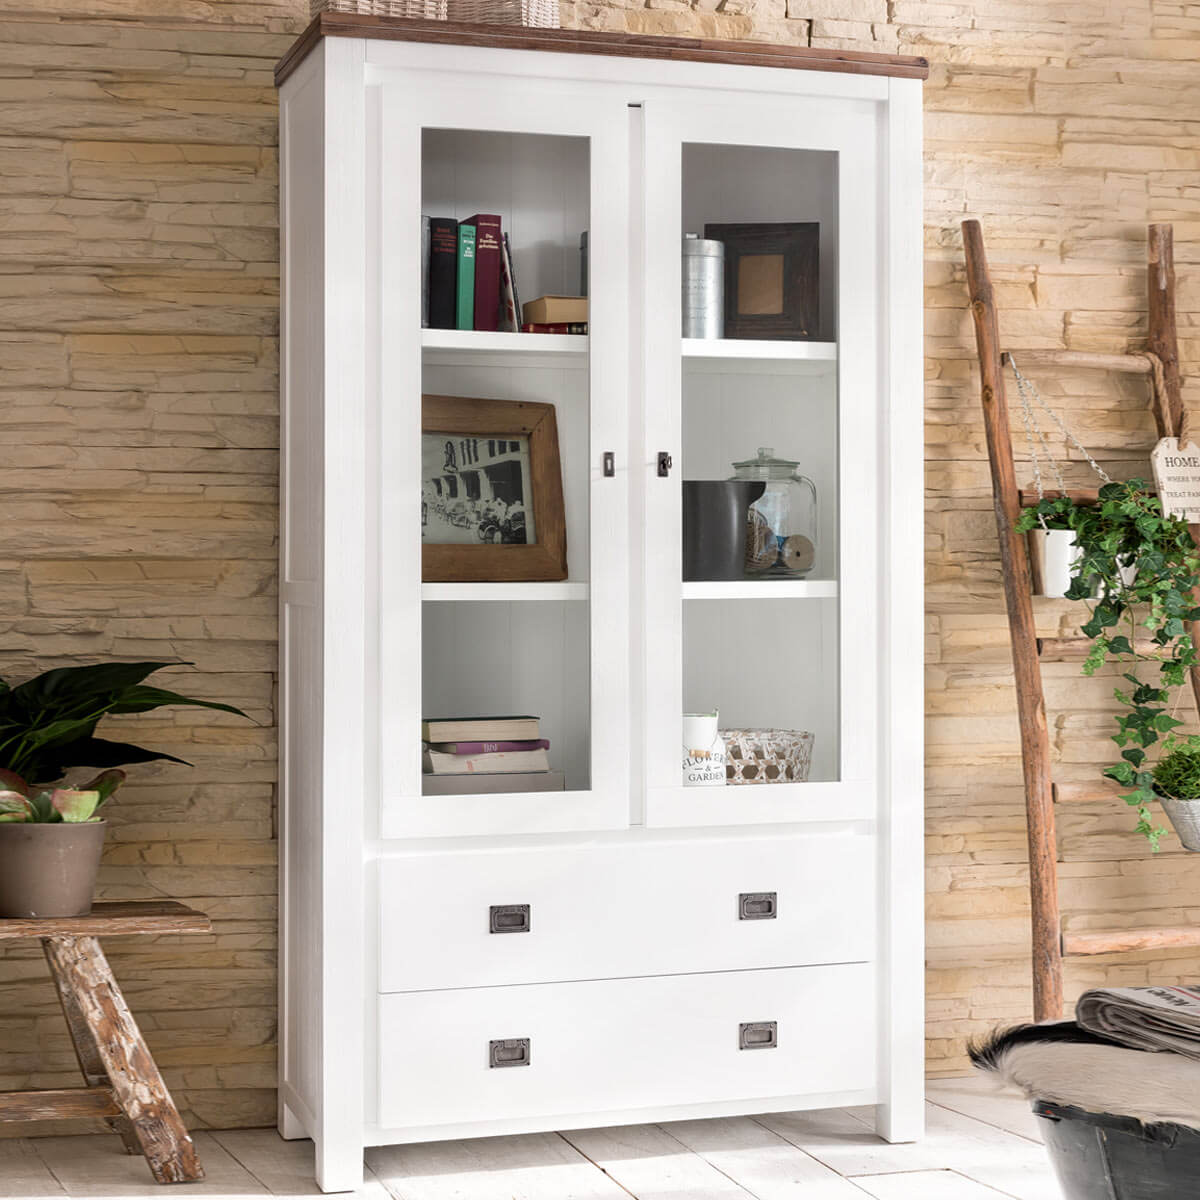 vitrinenschrank weiss braun vitrine k chenschrank vintage glast r holz landhaus ebay. Black Bedroom Furniture Sets. Home Design Ideas